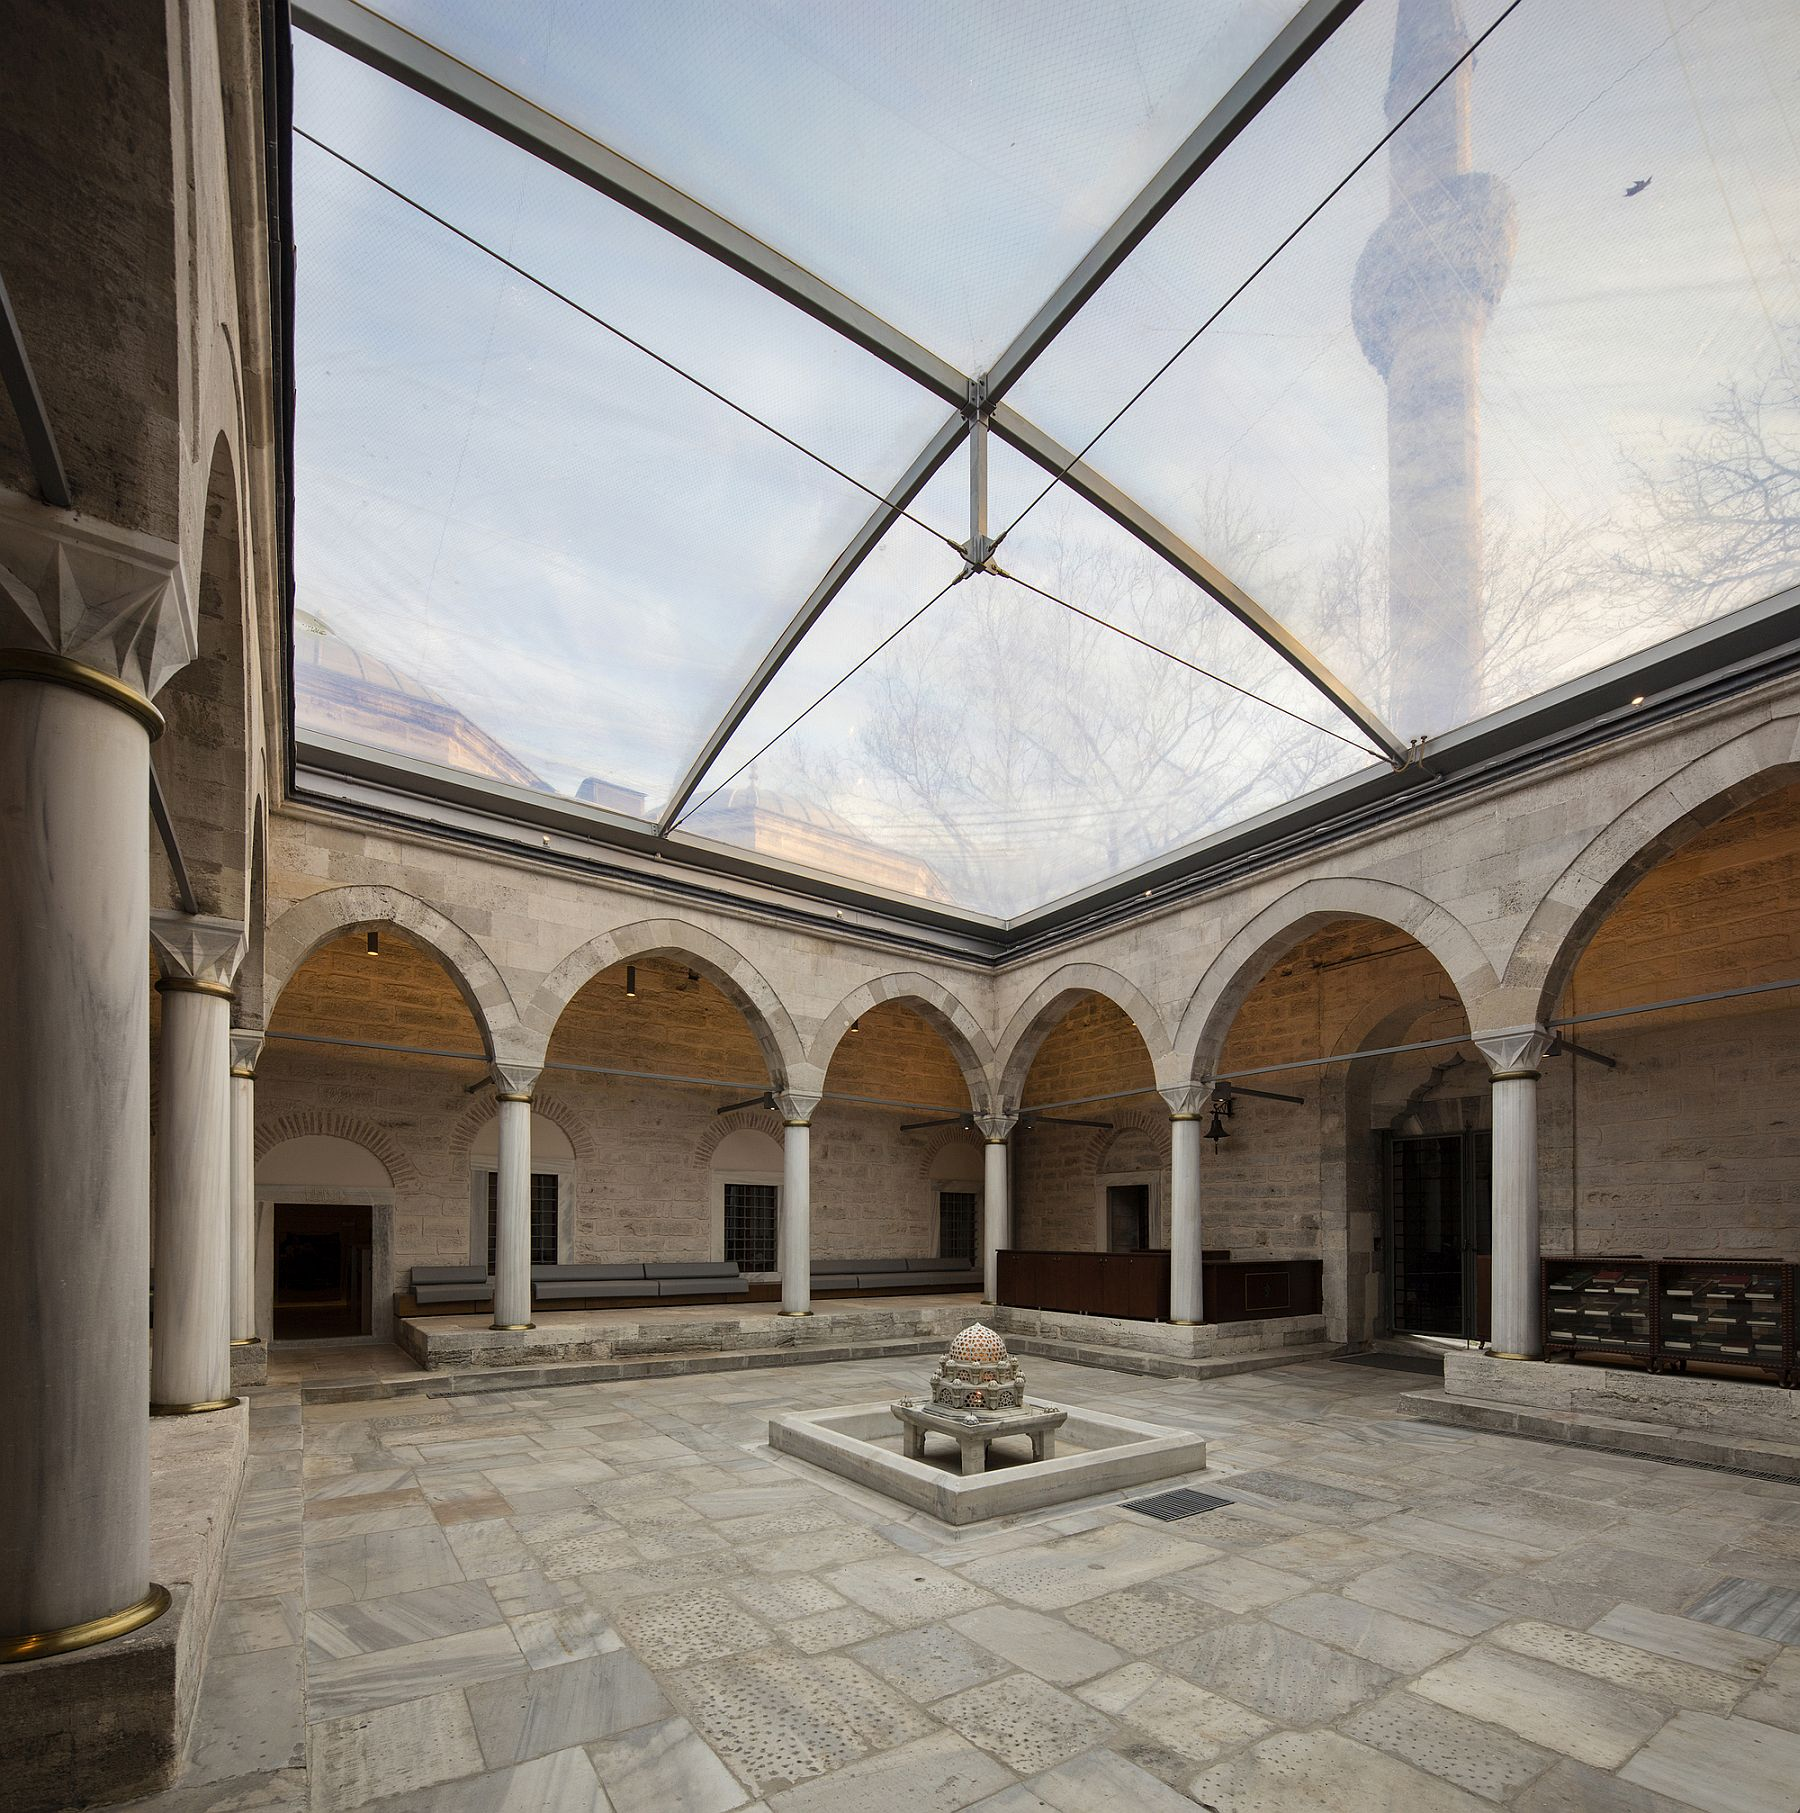 Ceentral courtyard of the librray with a new glass dome